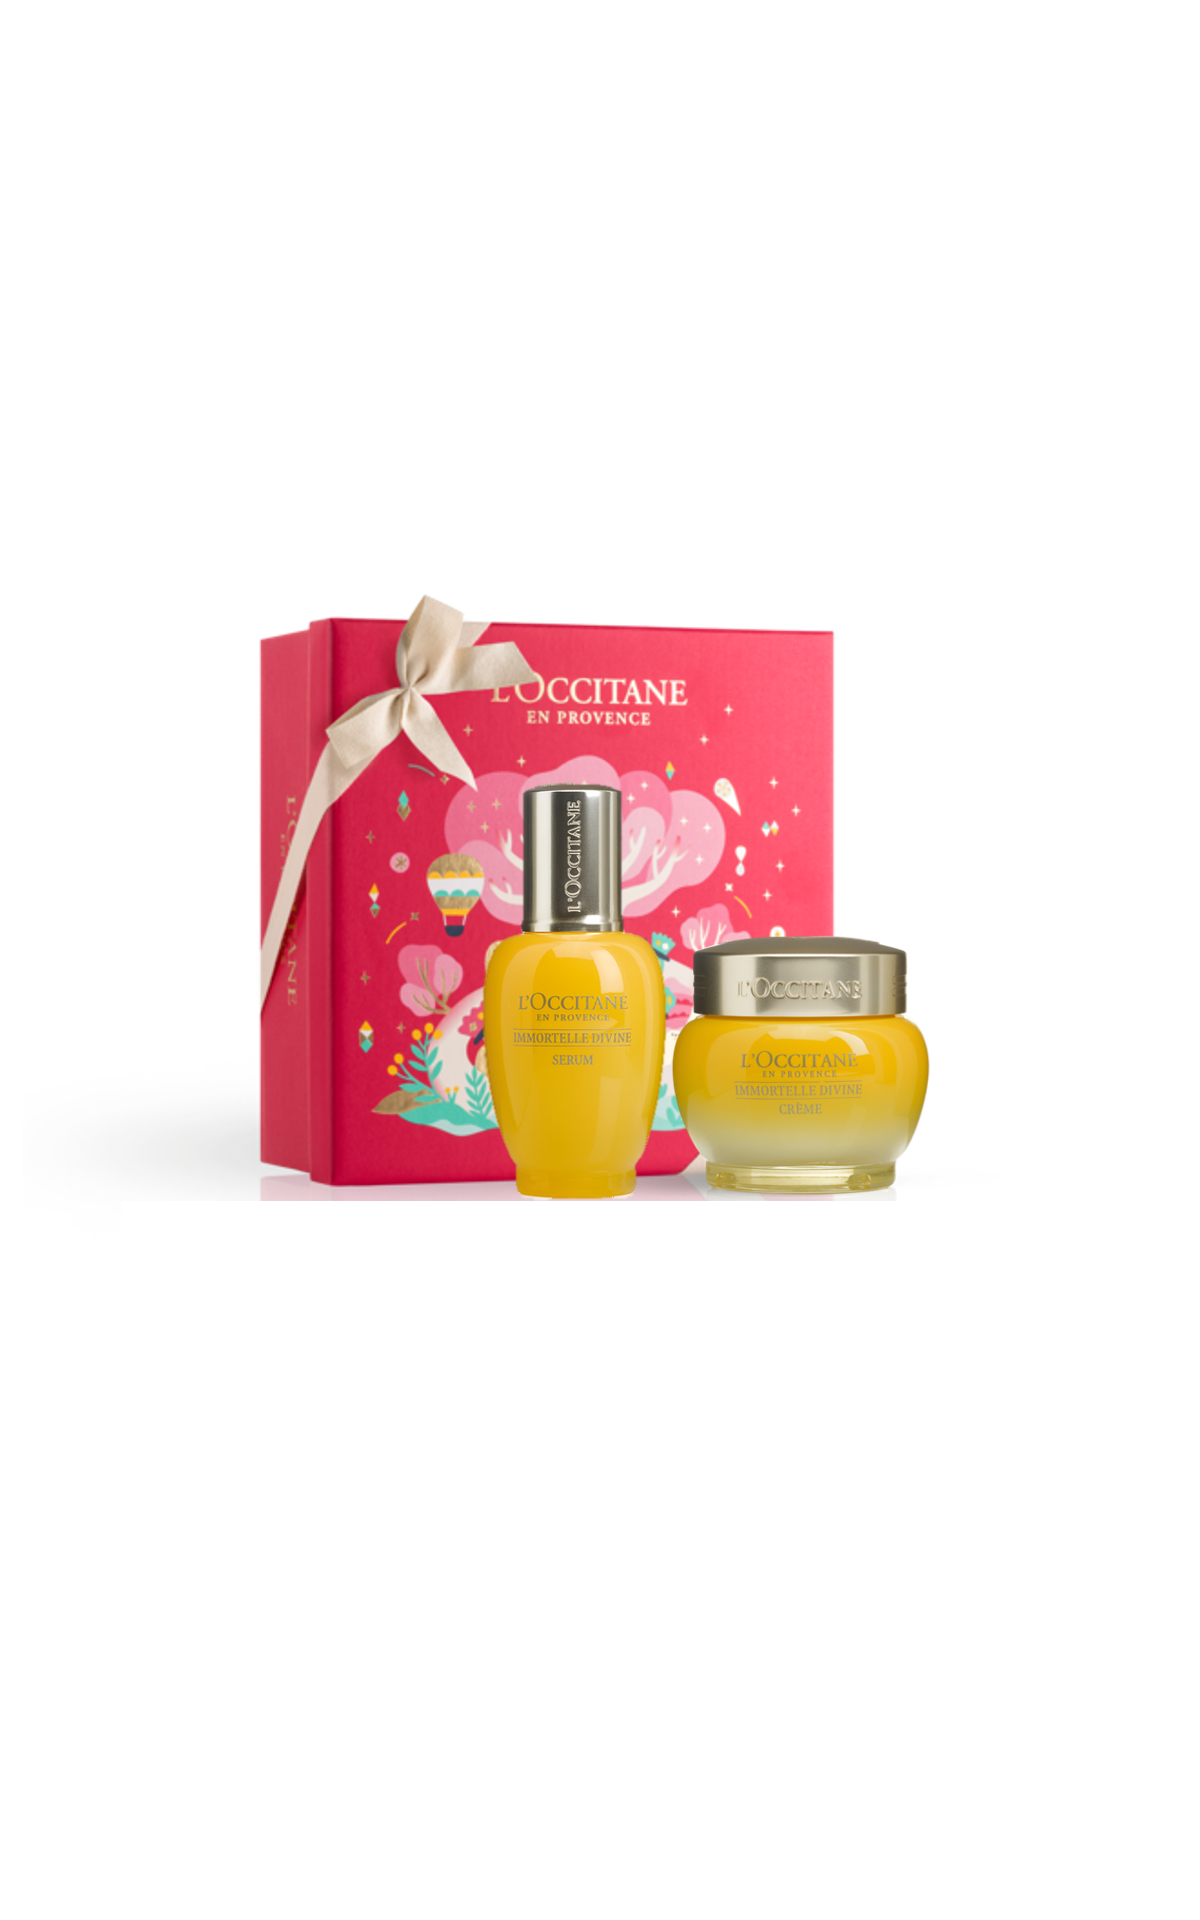 Immortelle divine giting set L'occitane en provence